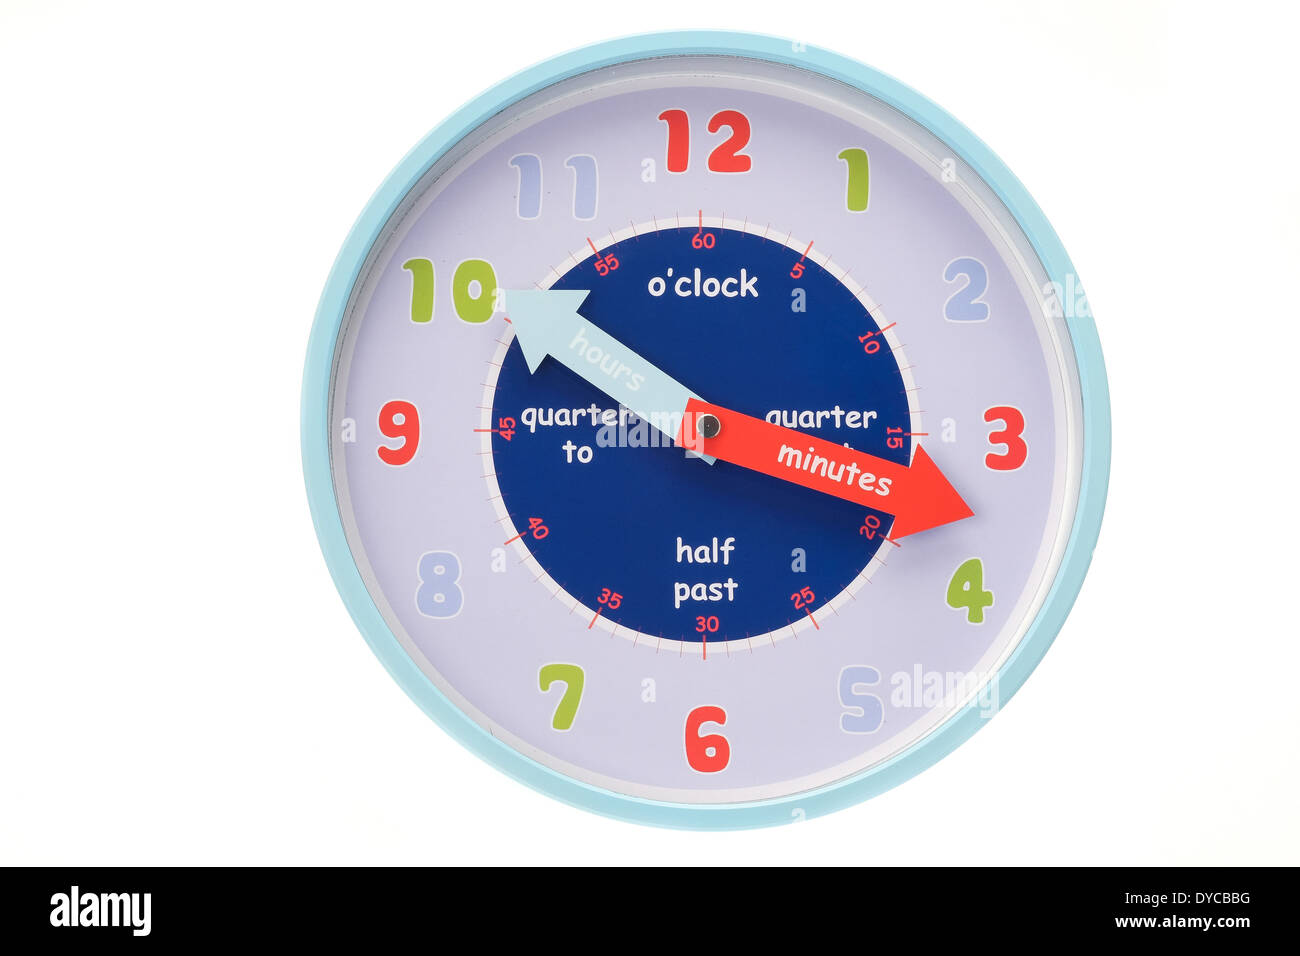 A wall clock that helps to teach children to tell the time. - Stock Image